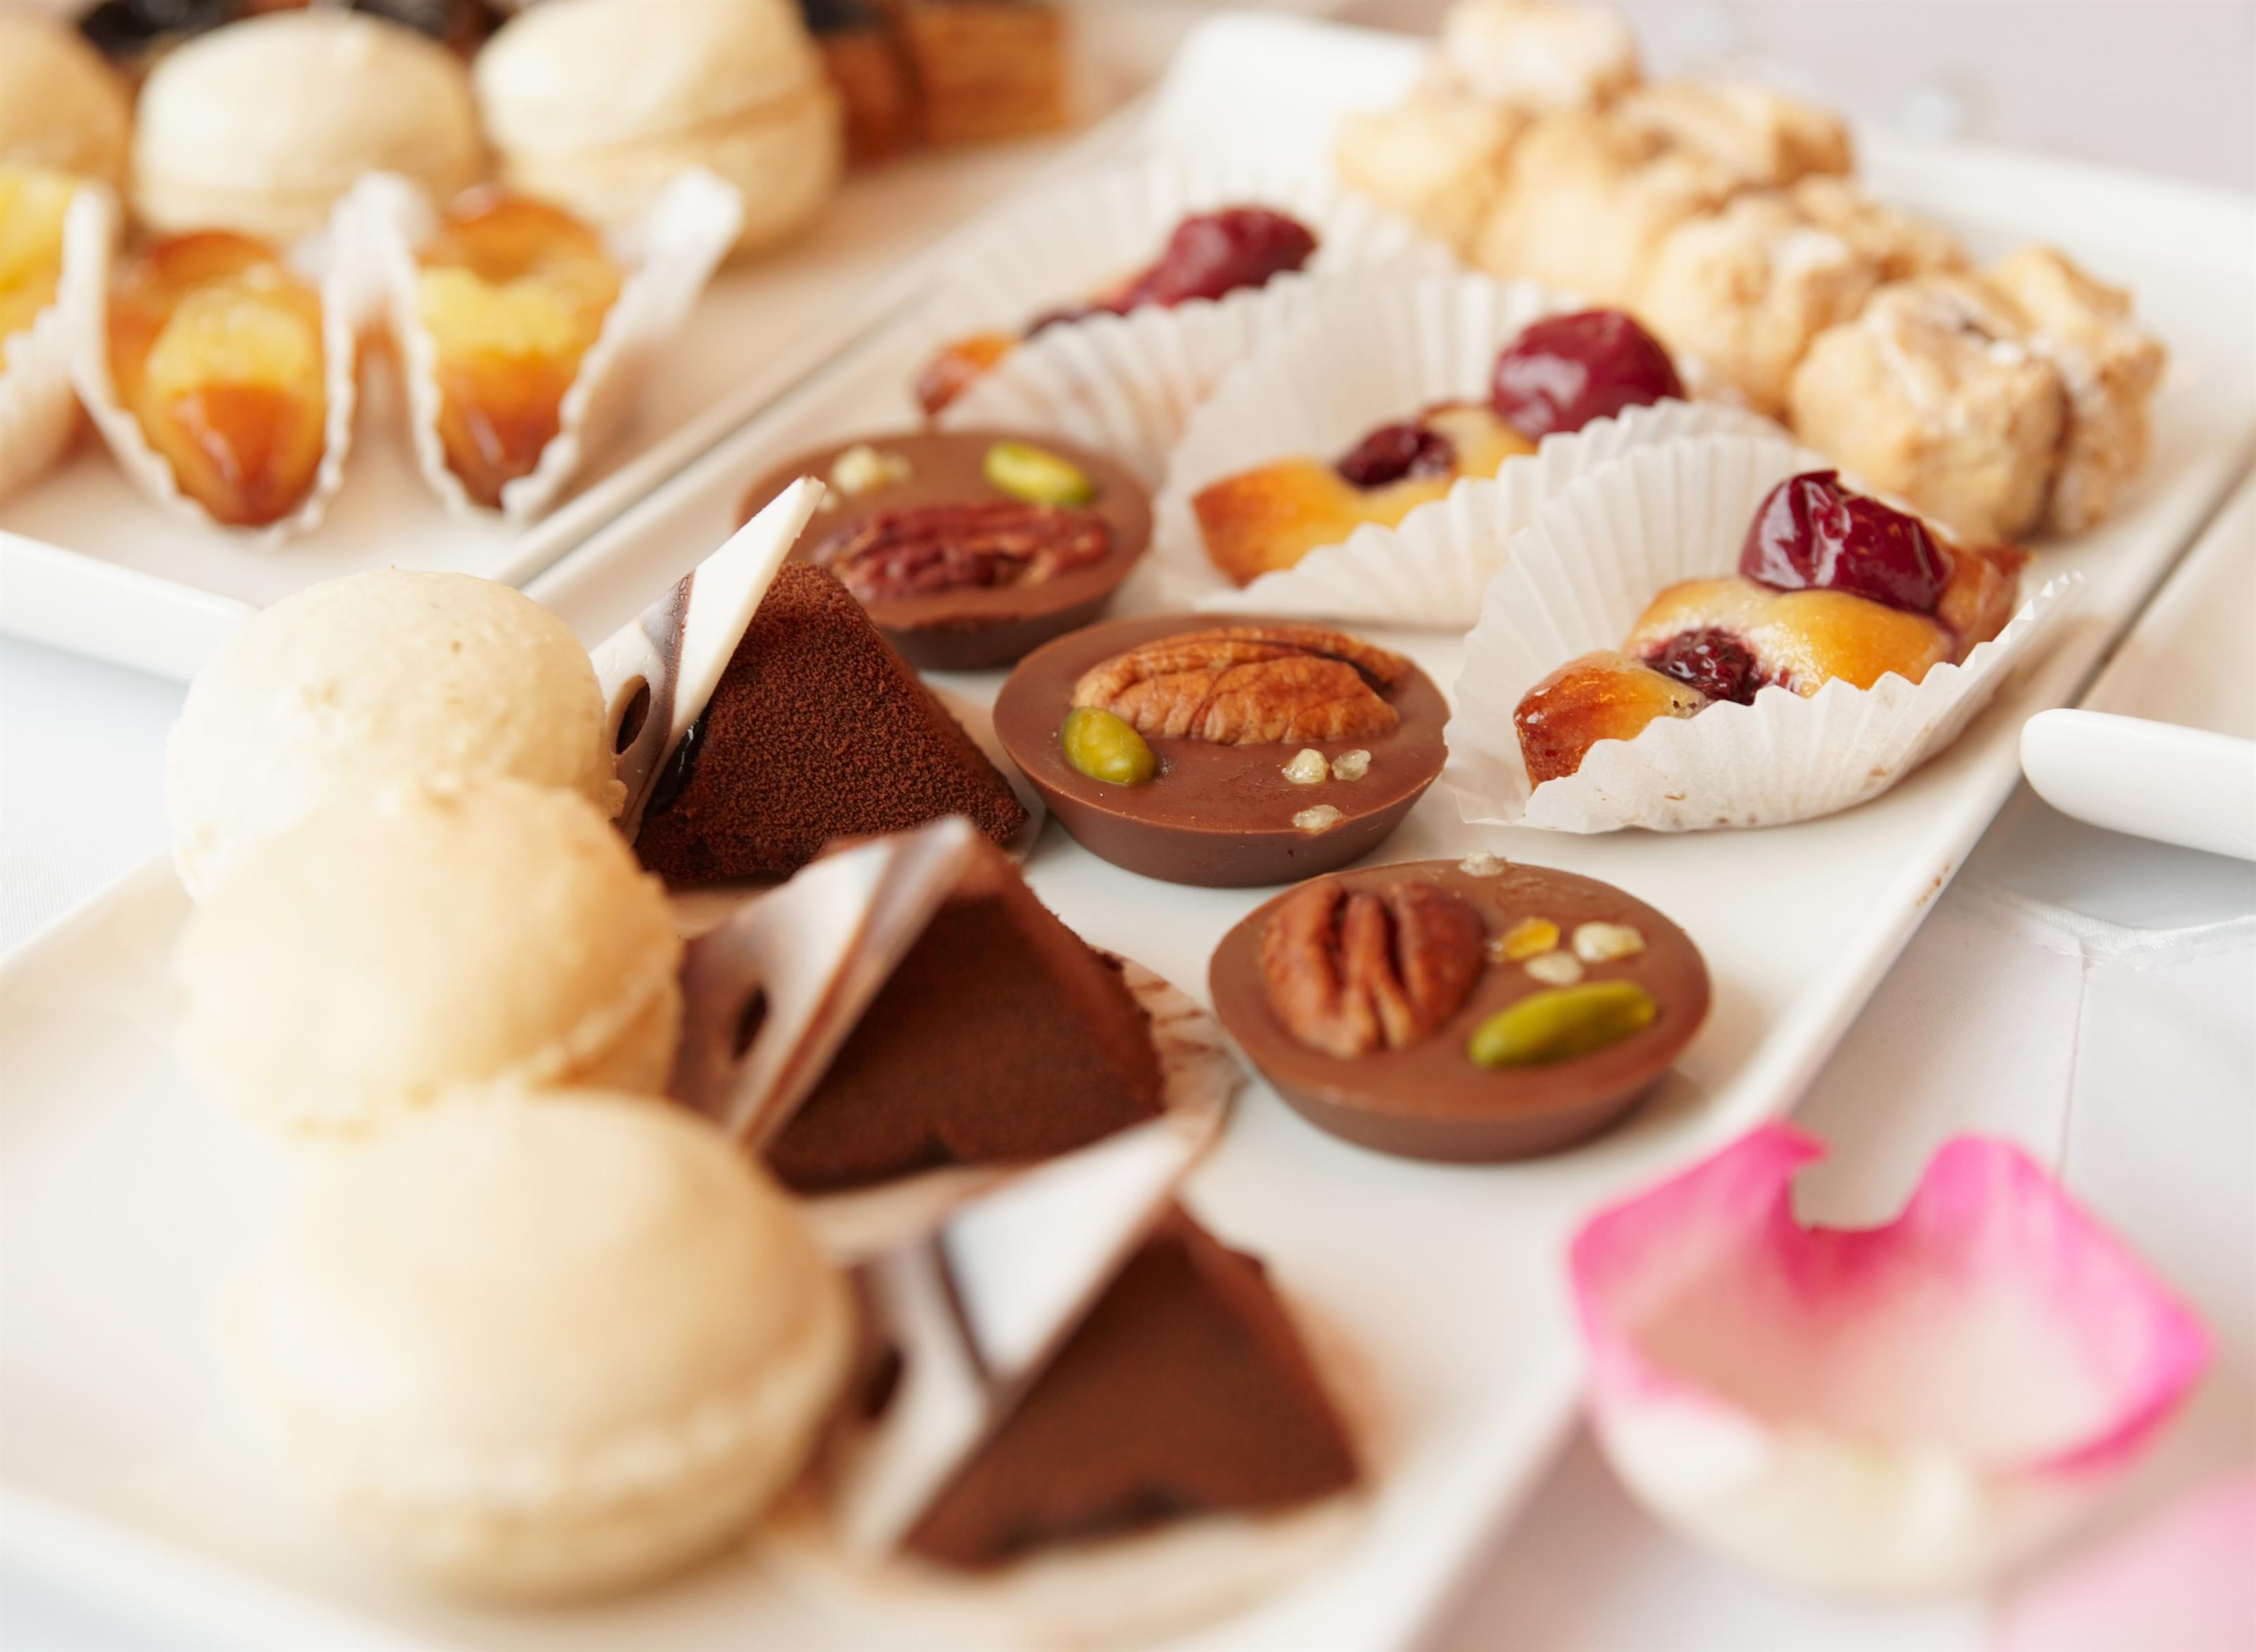 An assortment of mini desserts